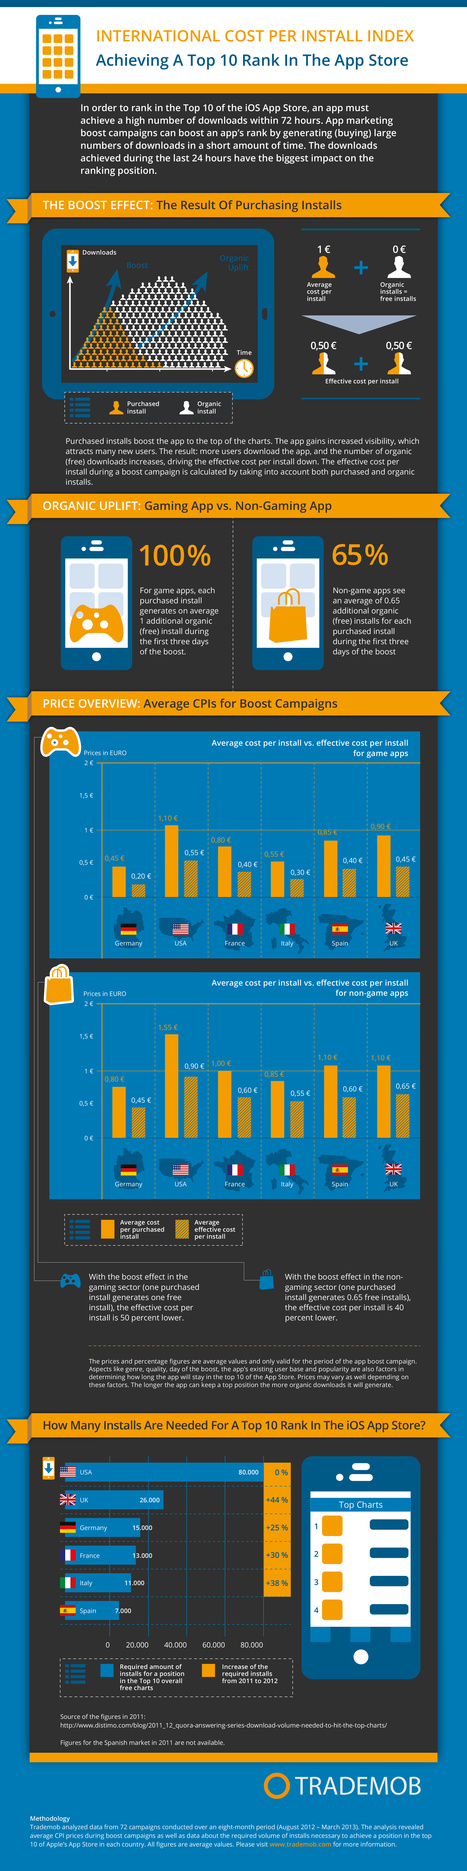 [INFOGRAPHIC] Calculating the cost of a Top 10 rank in the App Store | Digital & Mobile Marketing Toolkit | Scoop.it